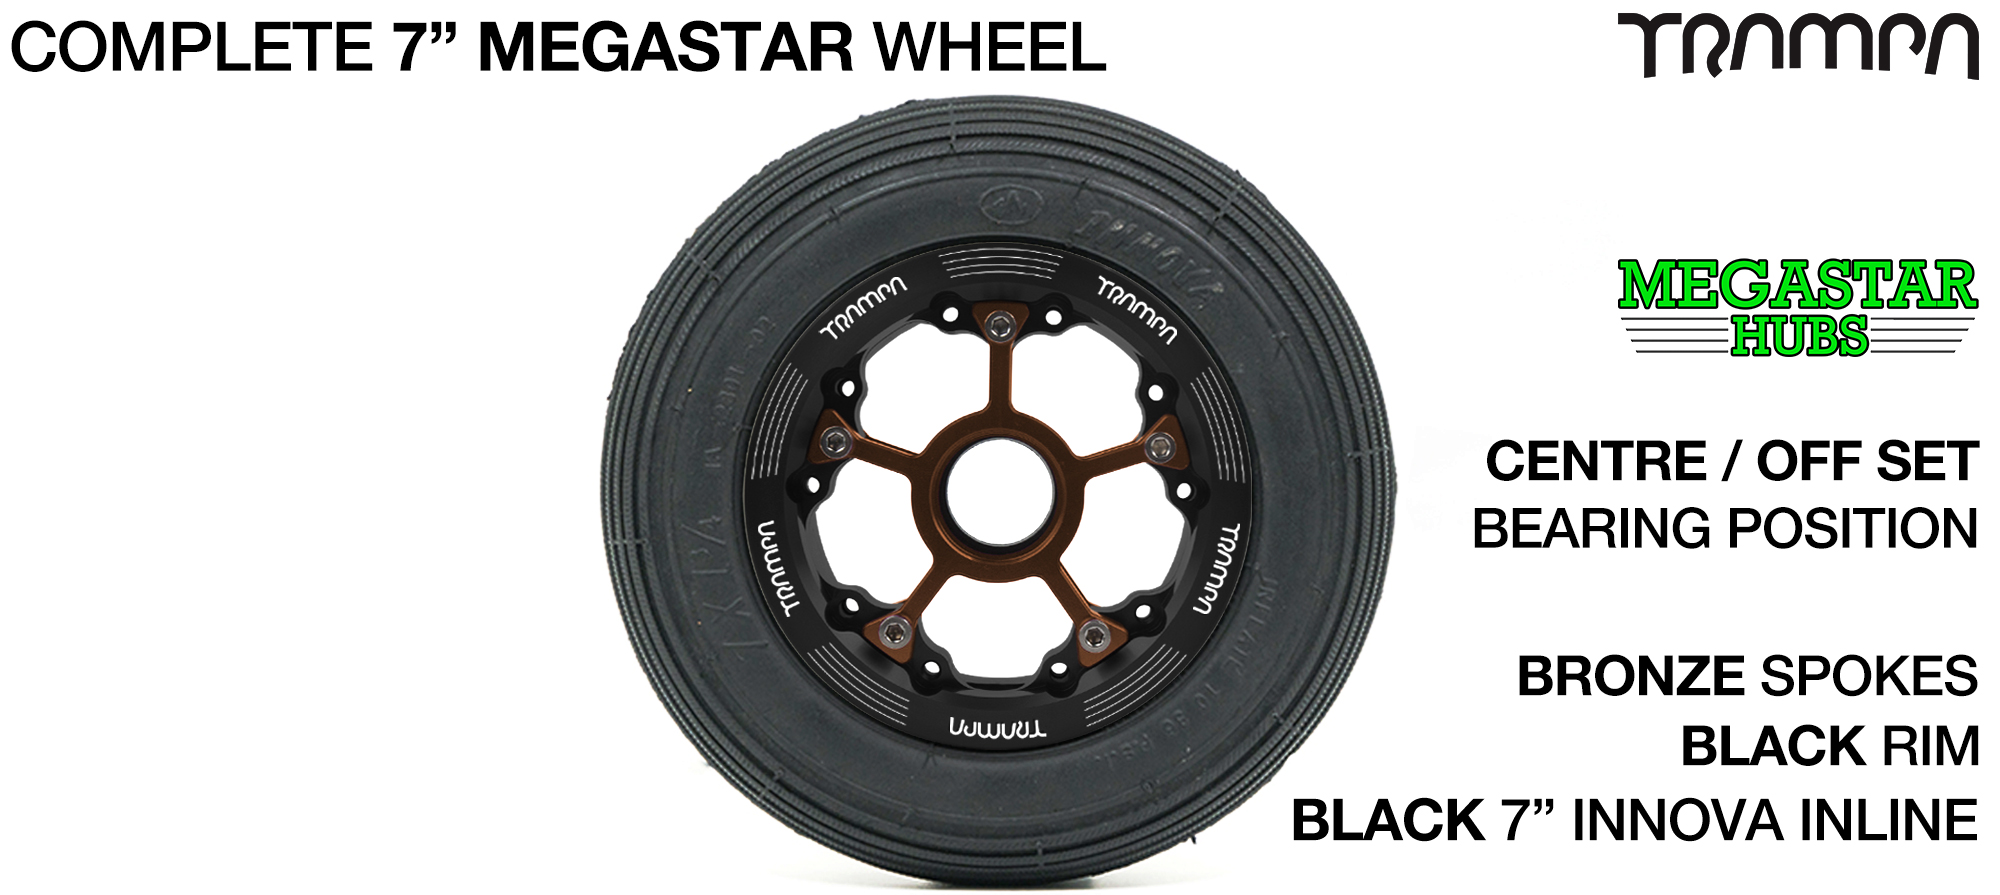 BLACK MEGASTAR Rims with BRONZE Spokes & 7 Inch Tyres